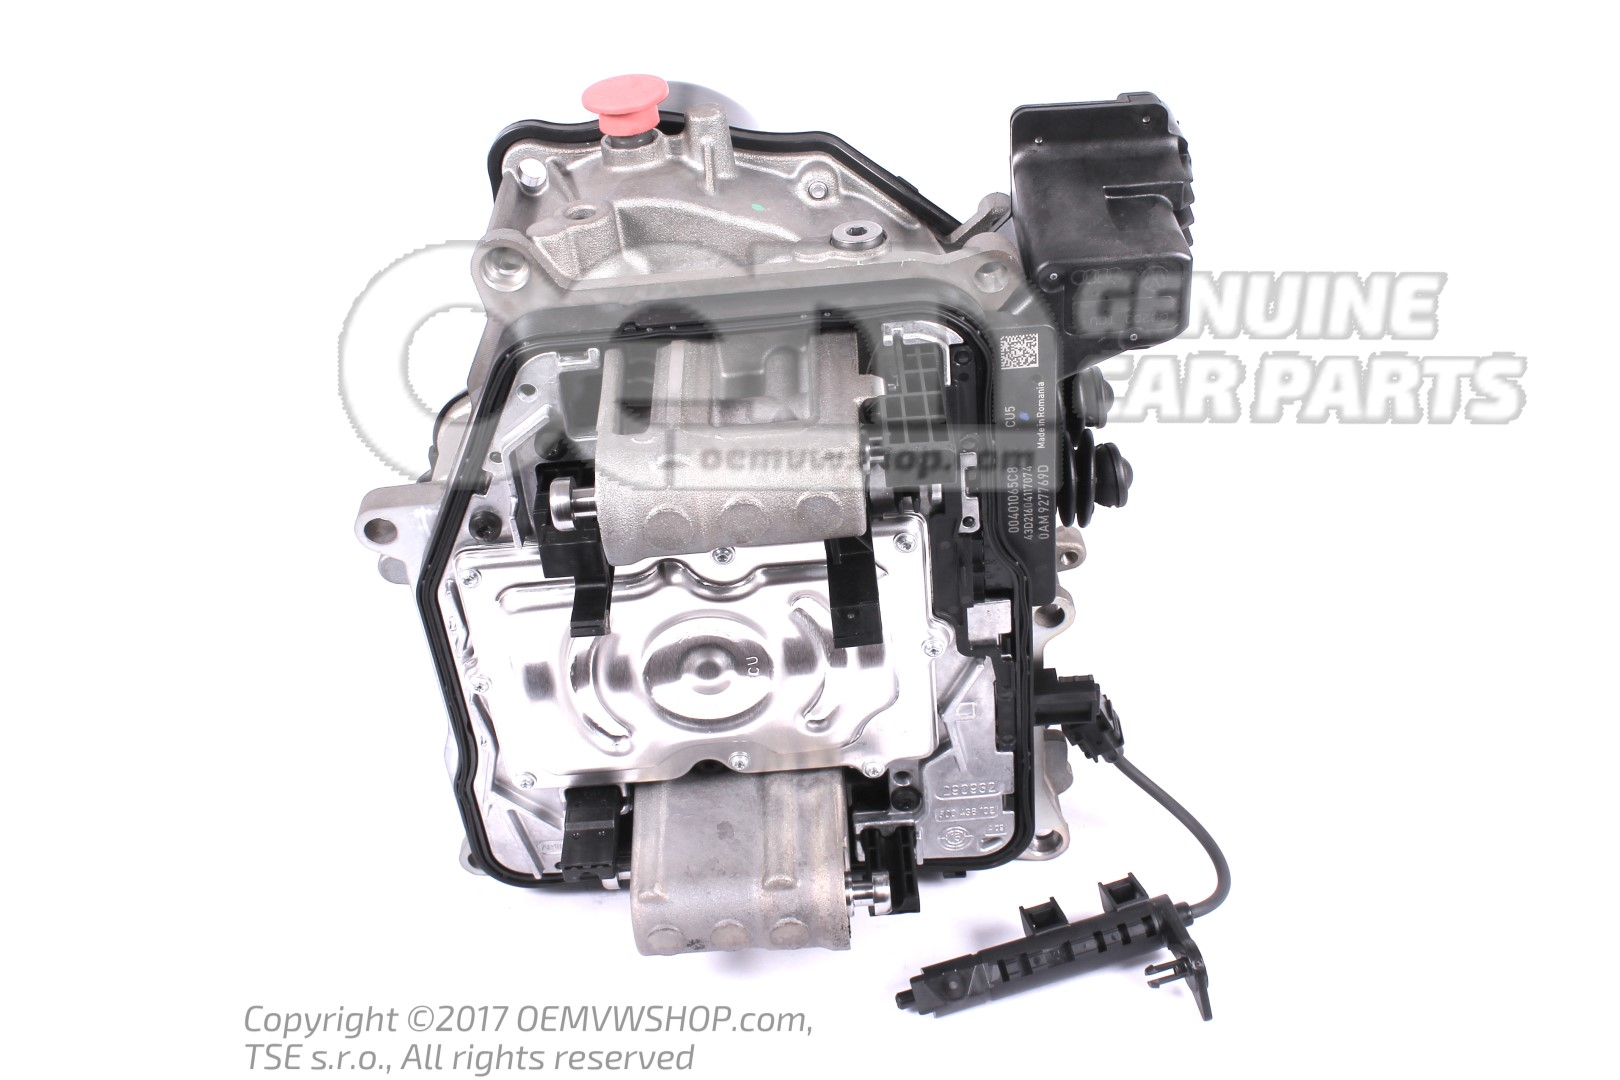 Genuine mechatronic with software for 7 speed 0AM DSG Gearbox